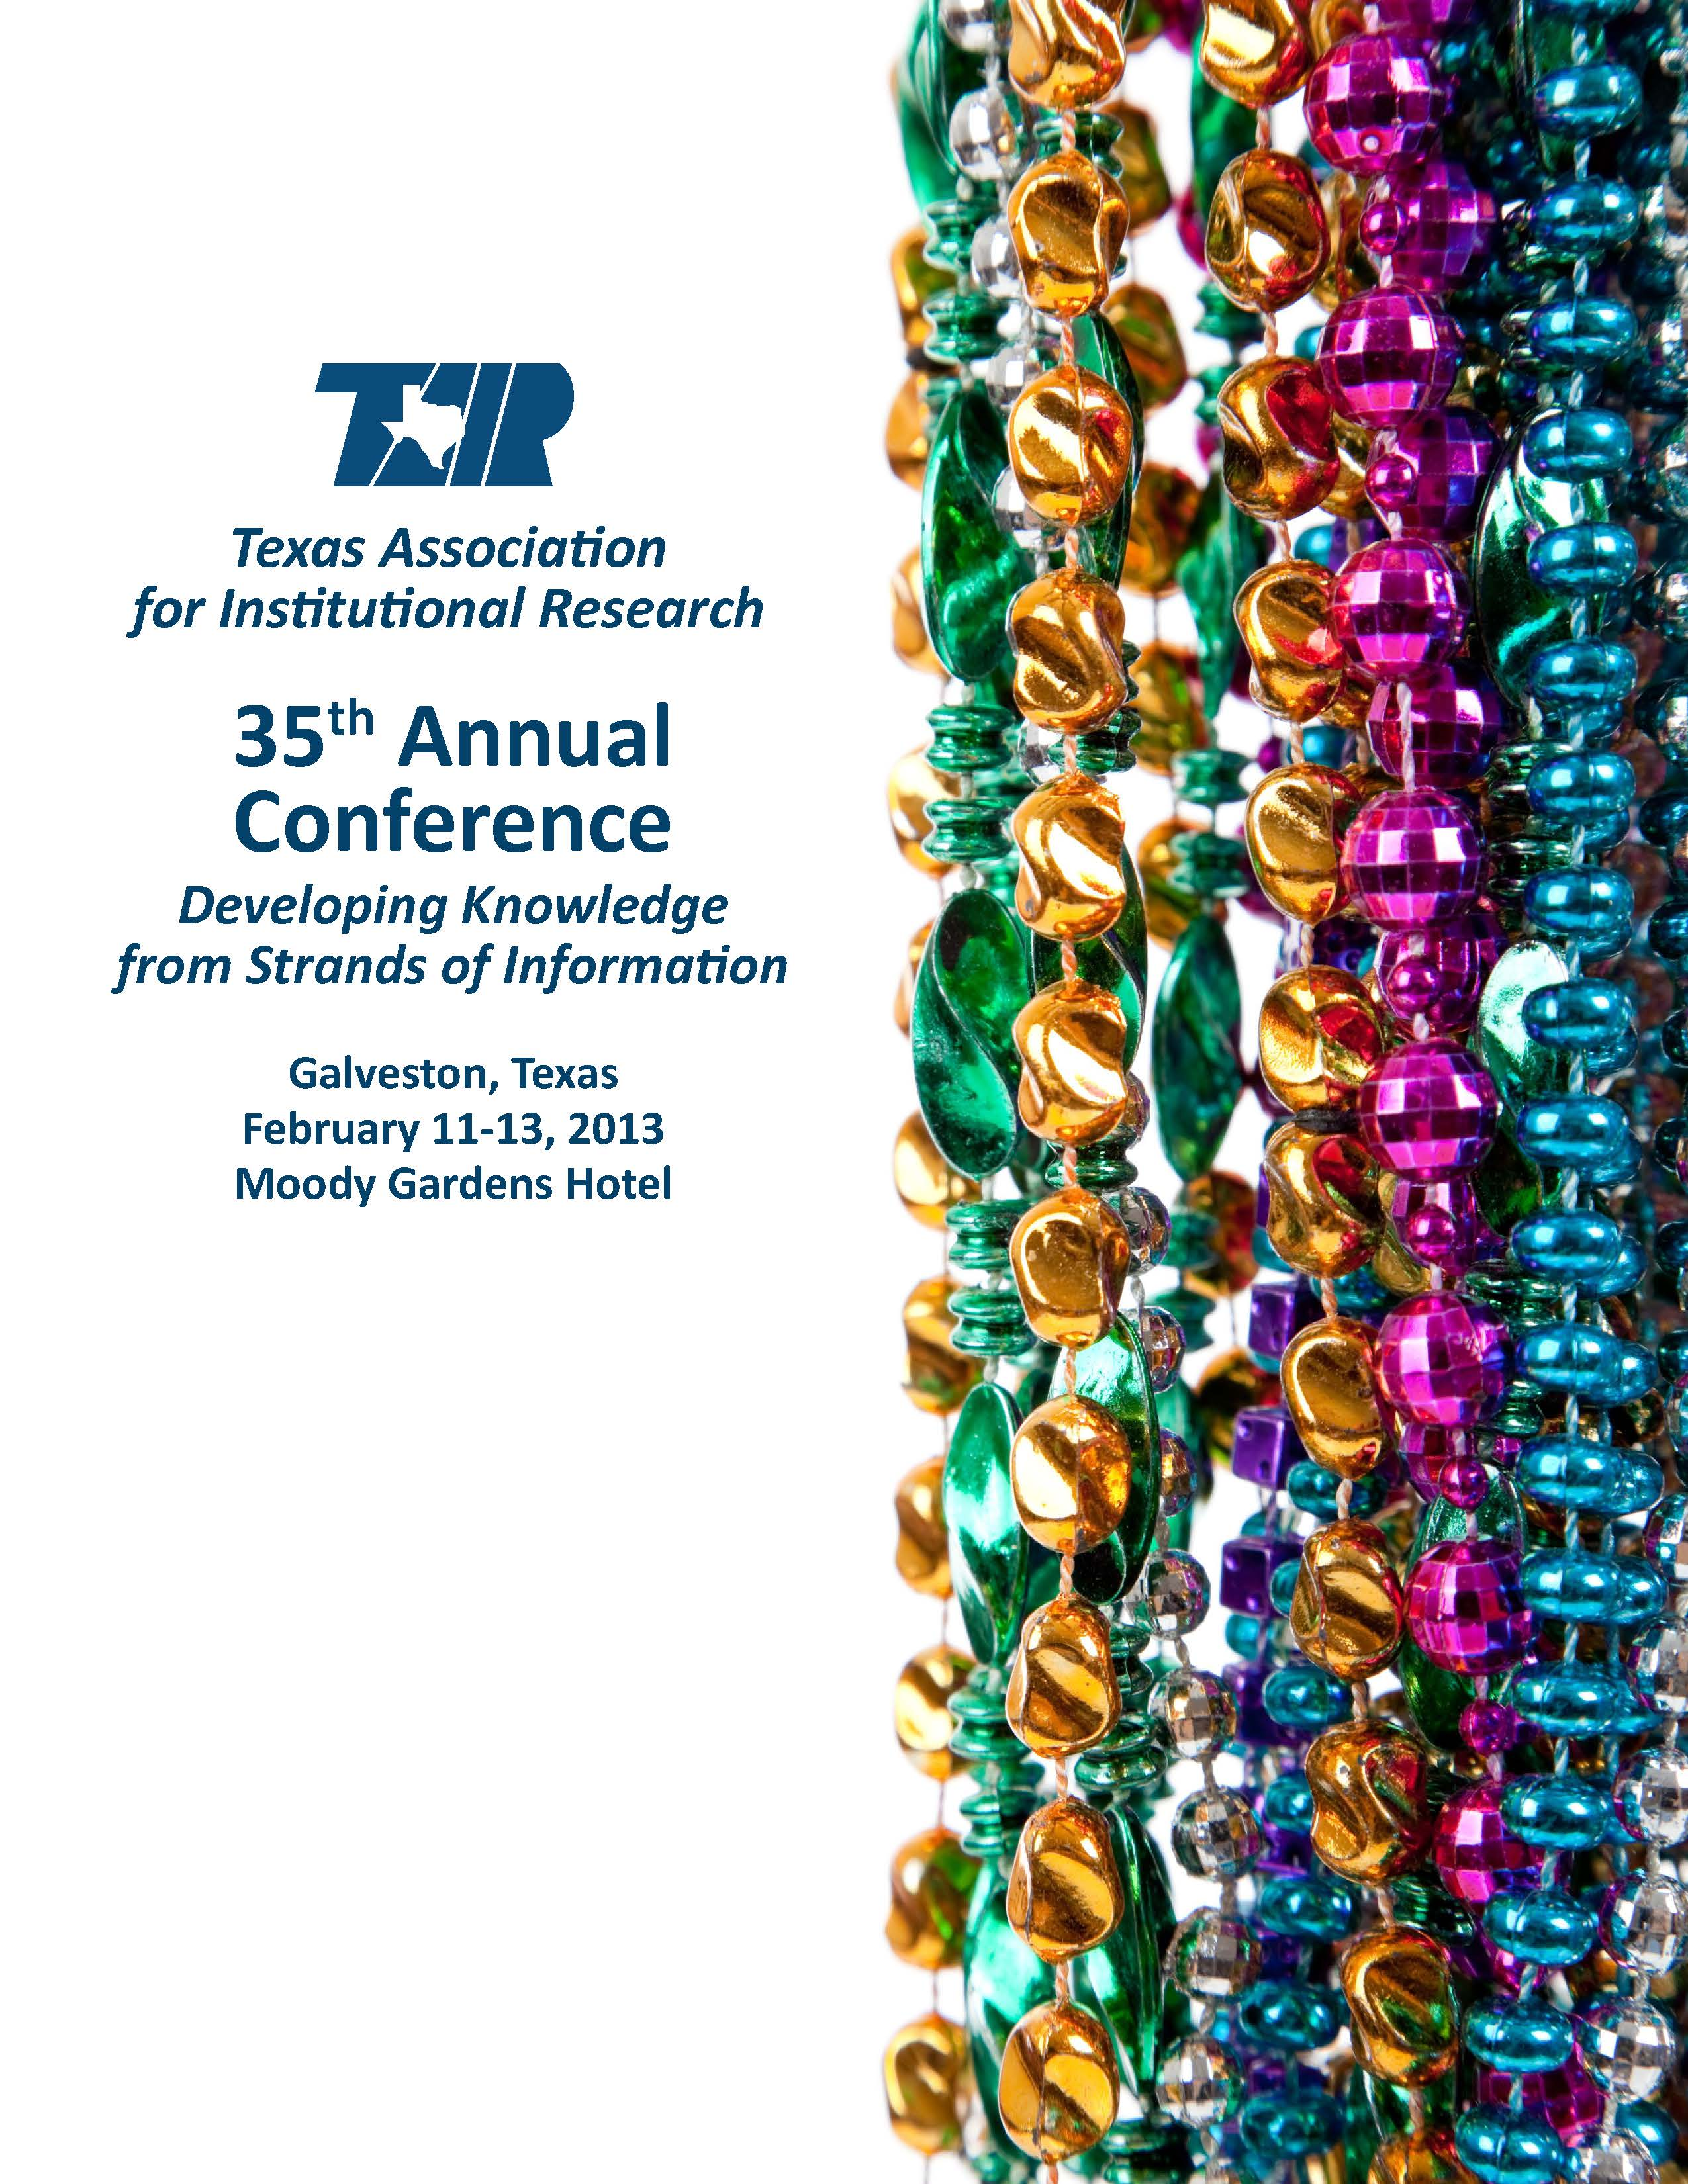 TAIR 2013 conference flyer image